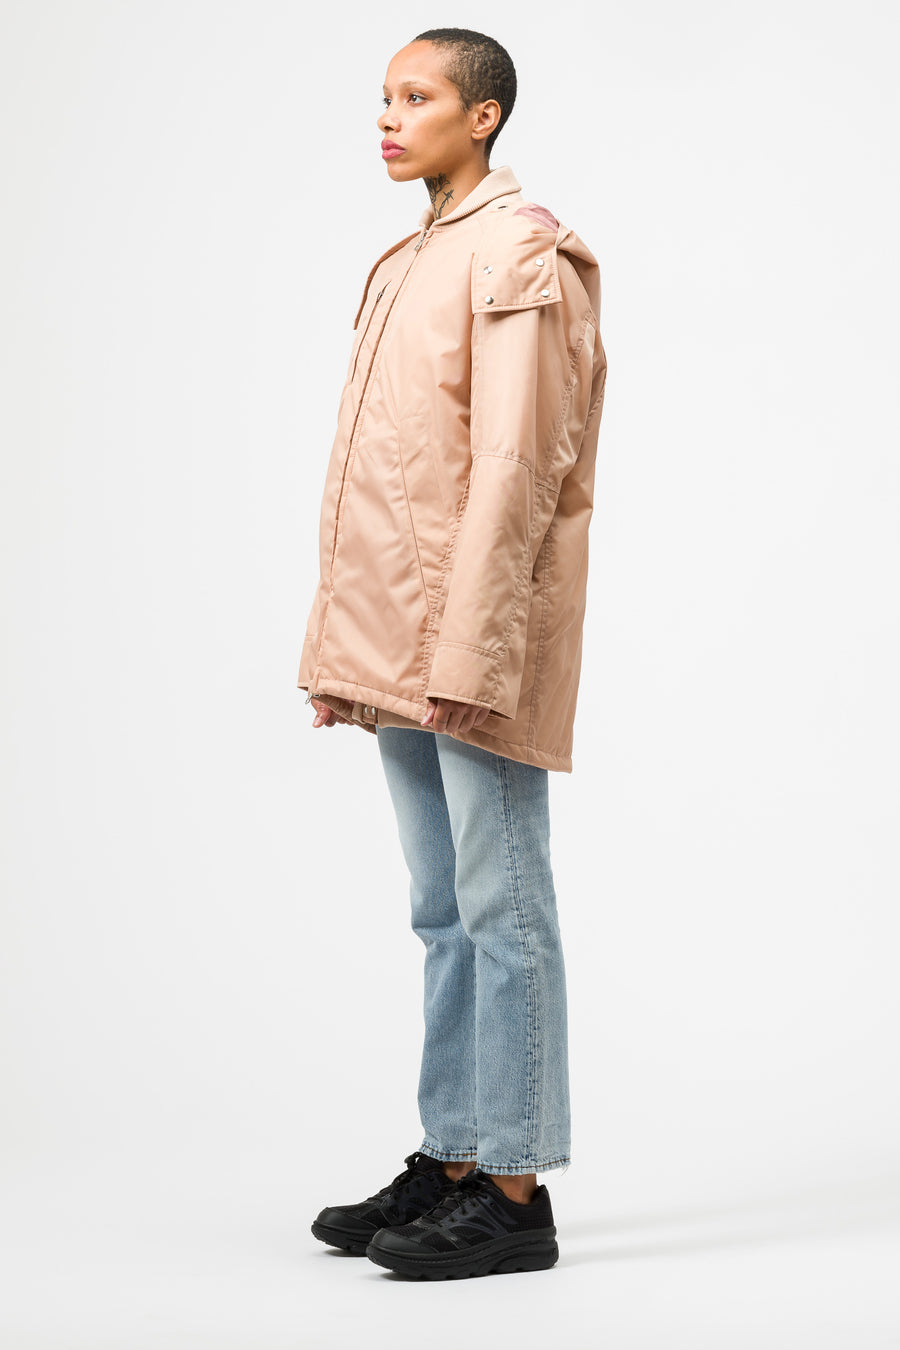 Acne Studios Ottoline NY Bomber in Dusty Pink - Notre